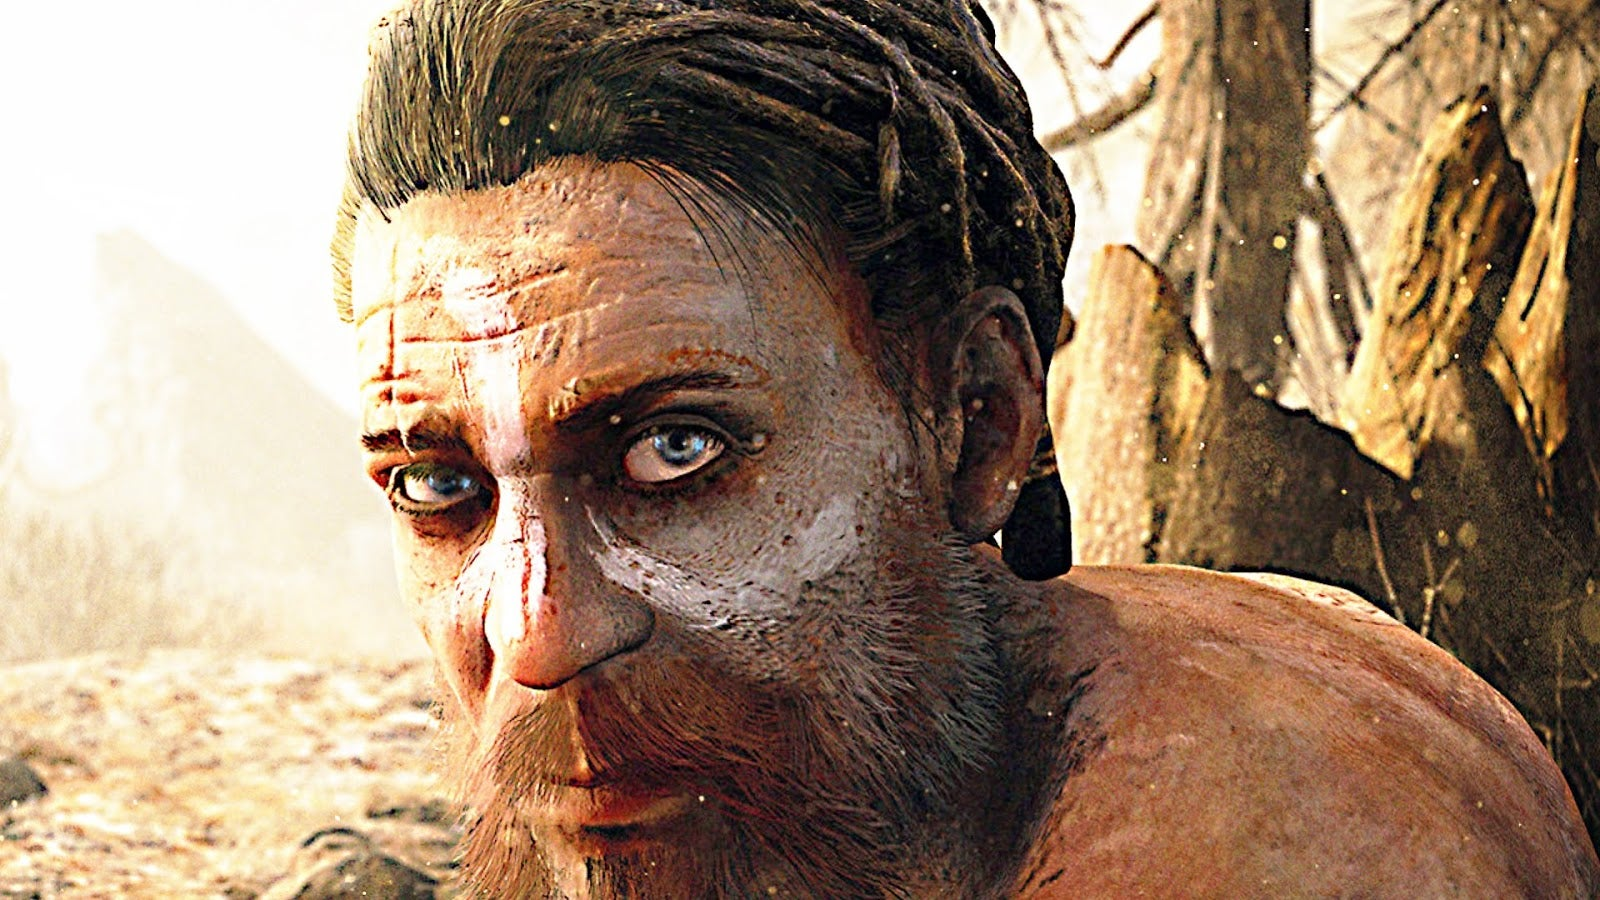 Far Cry Primal's Gonna Get Pretty Raw